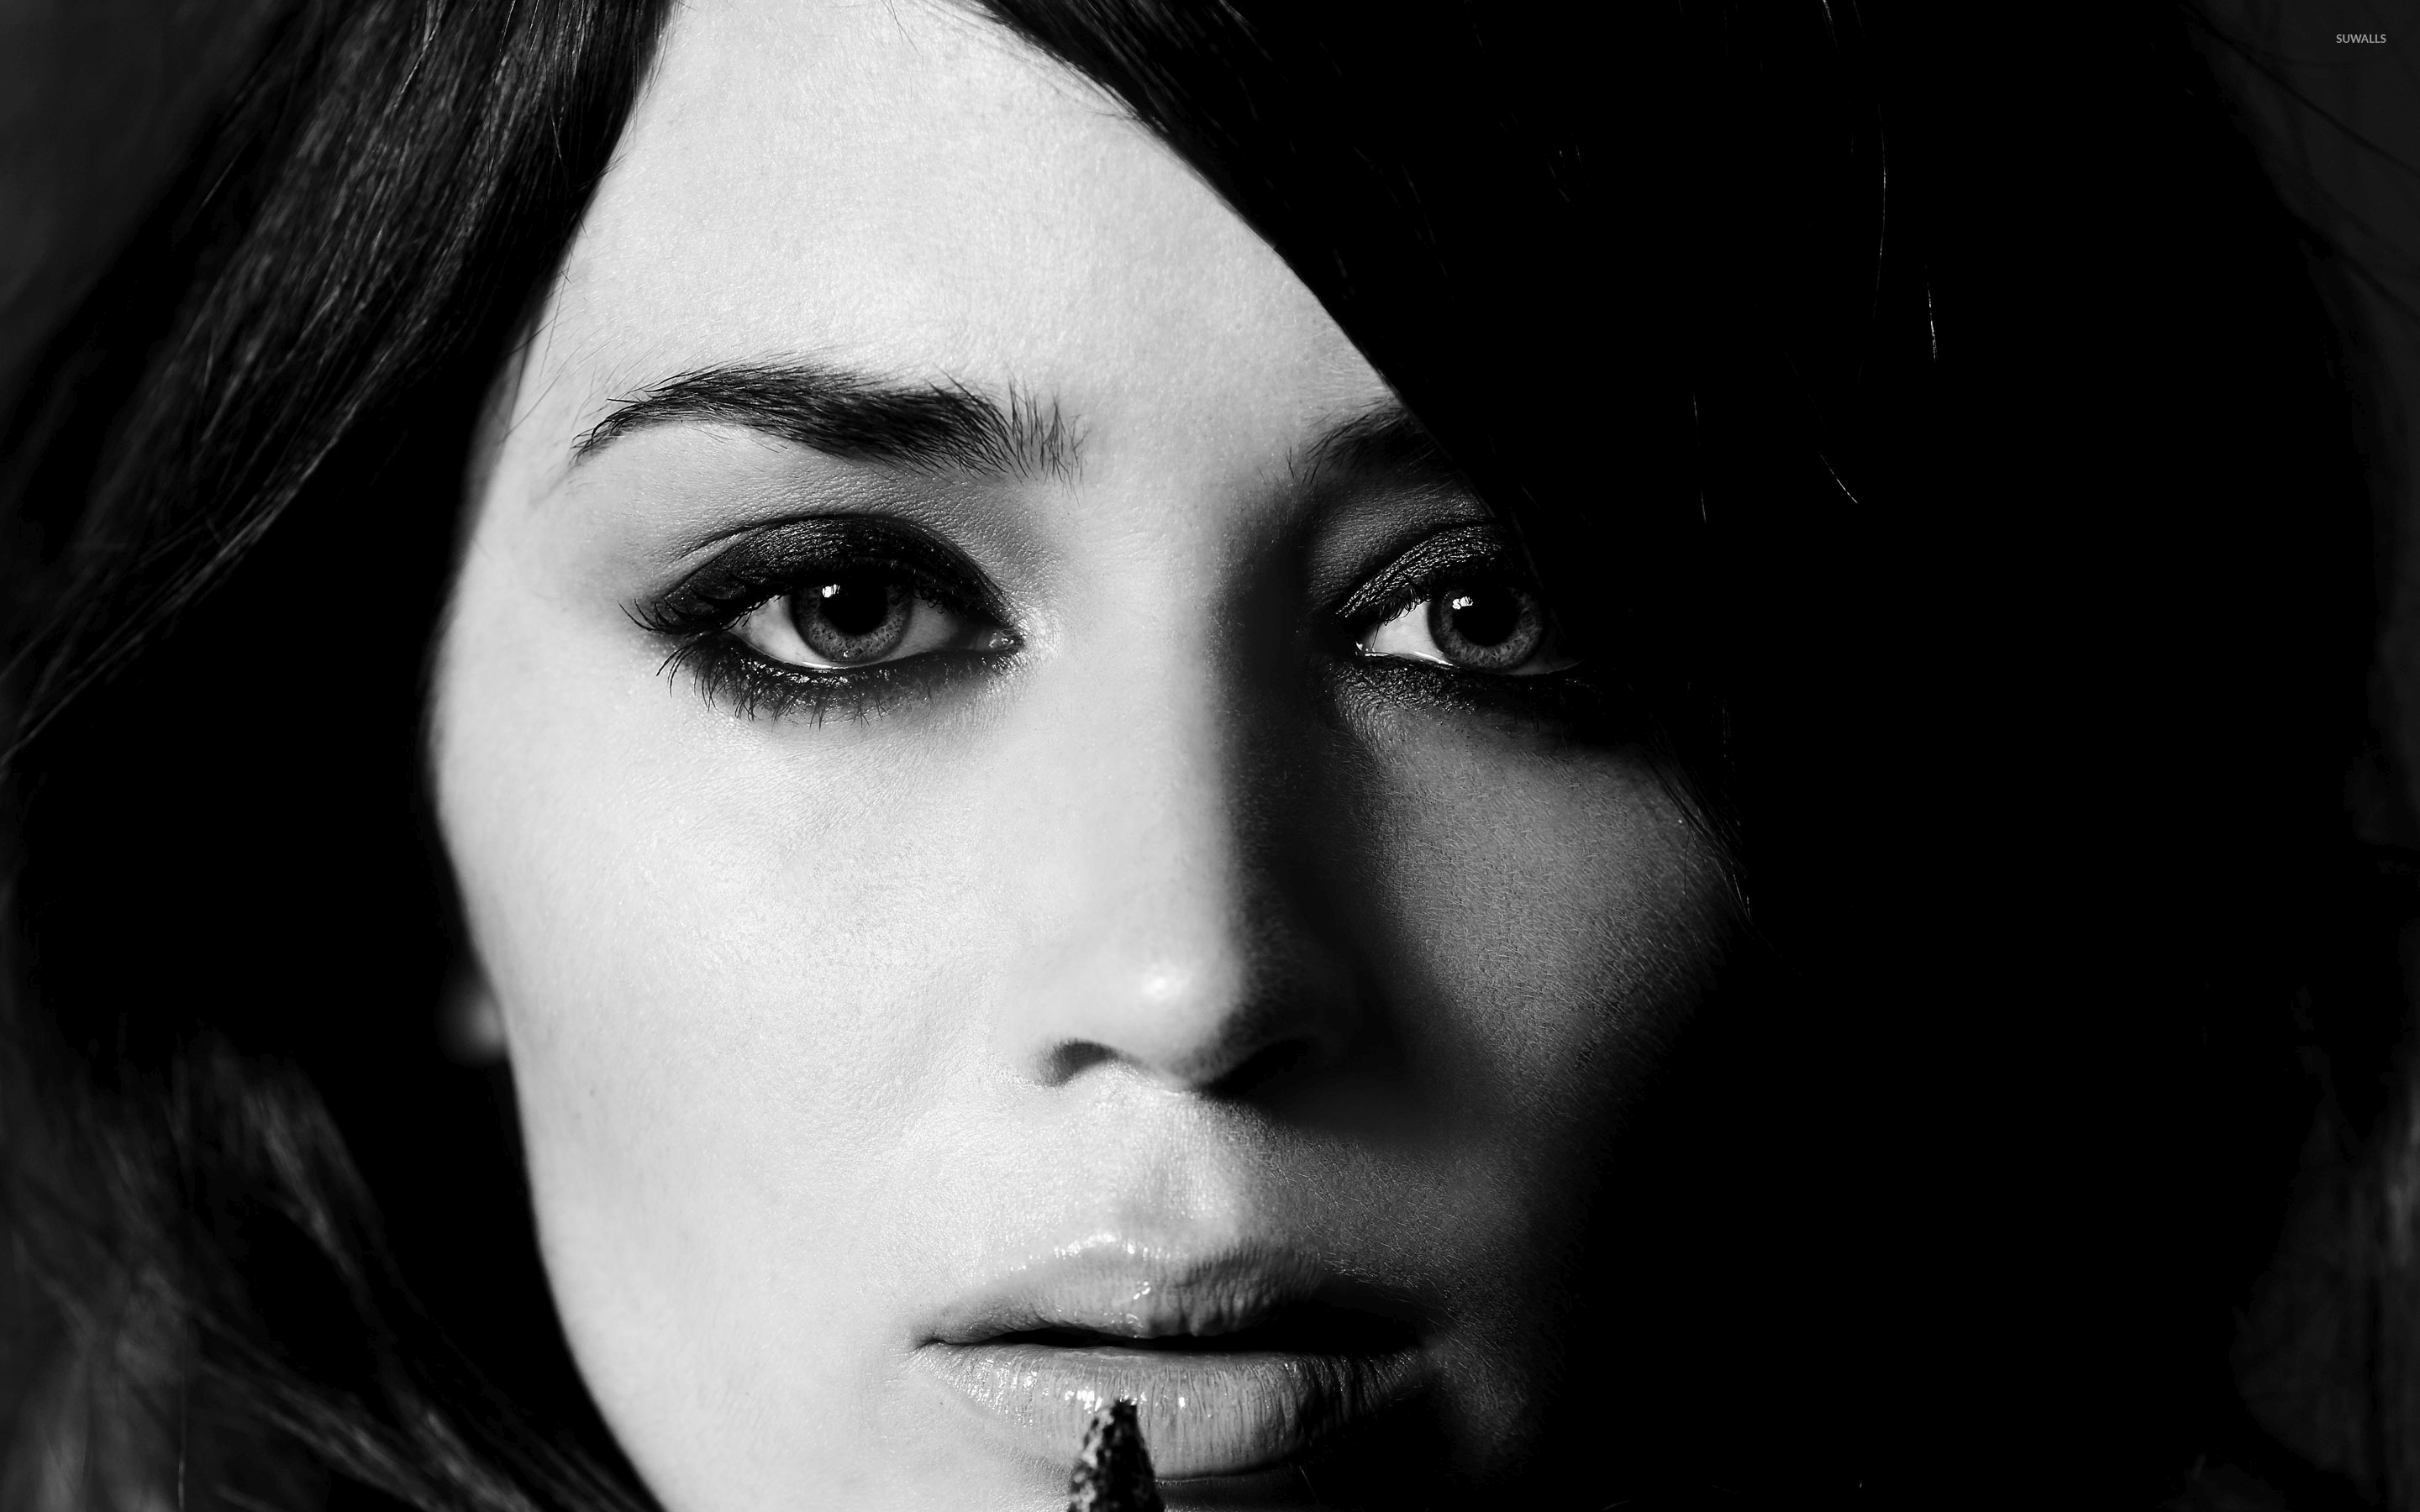 Emily Blunt 14 Wallpaper Celebrity Wallpapers 36773